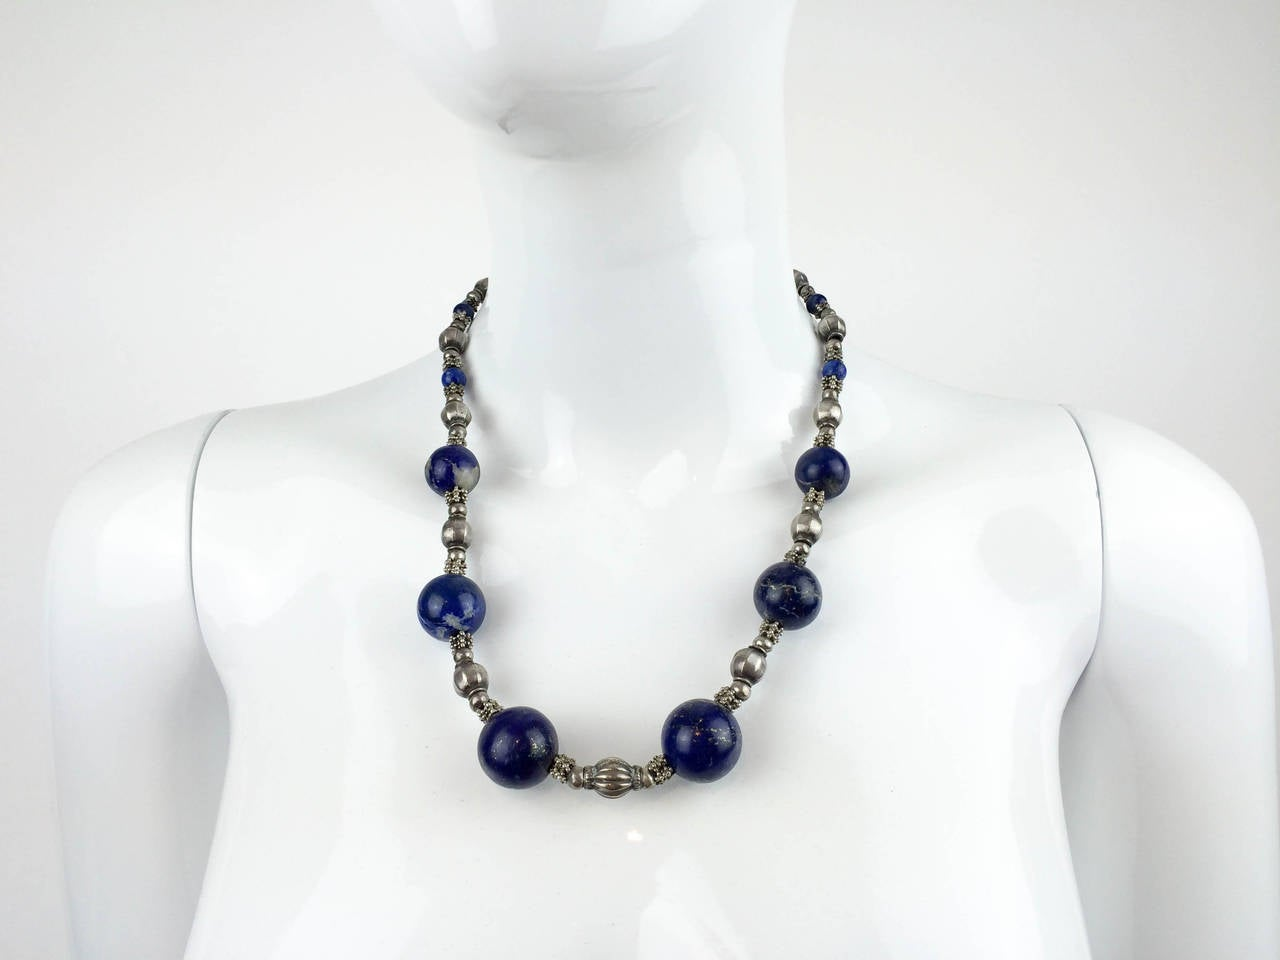 Silver and Lapis Lazuli Necklace - 1970s In Excellent Condition For Sale In London, Chelsea